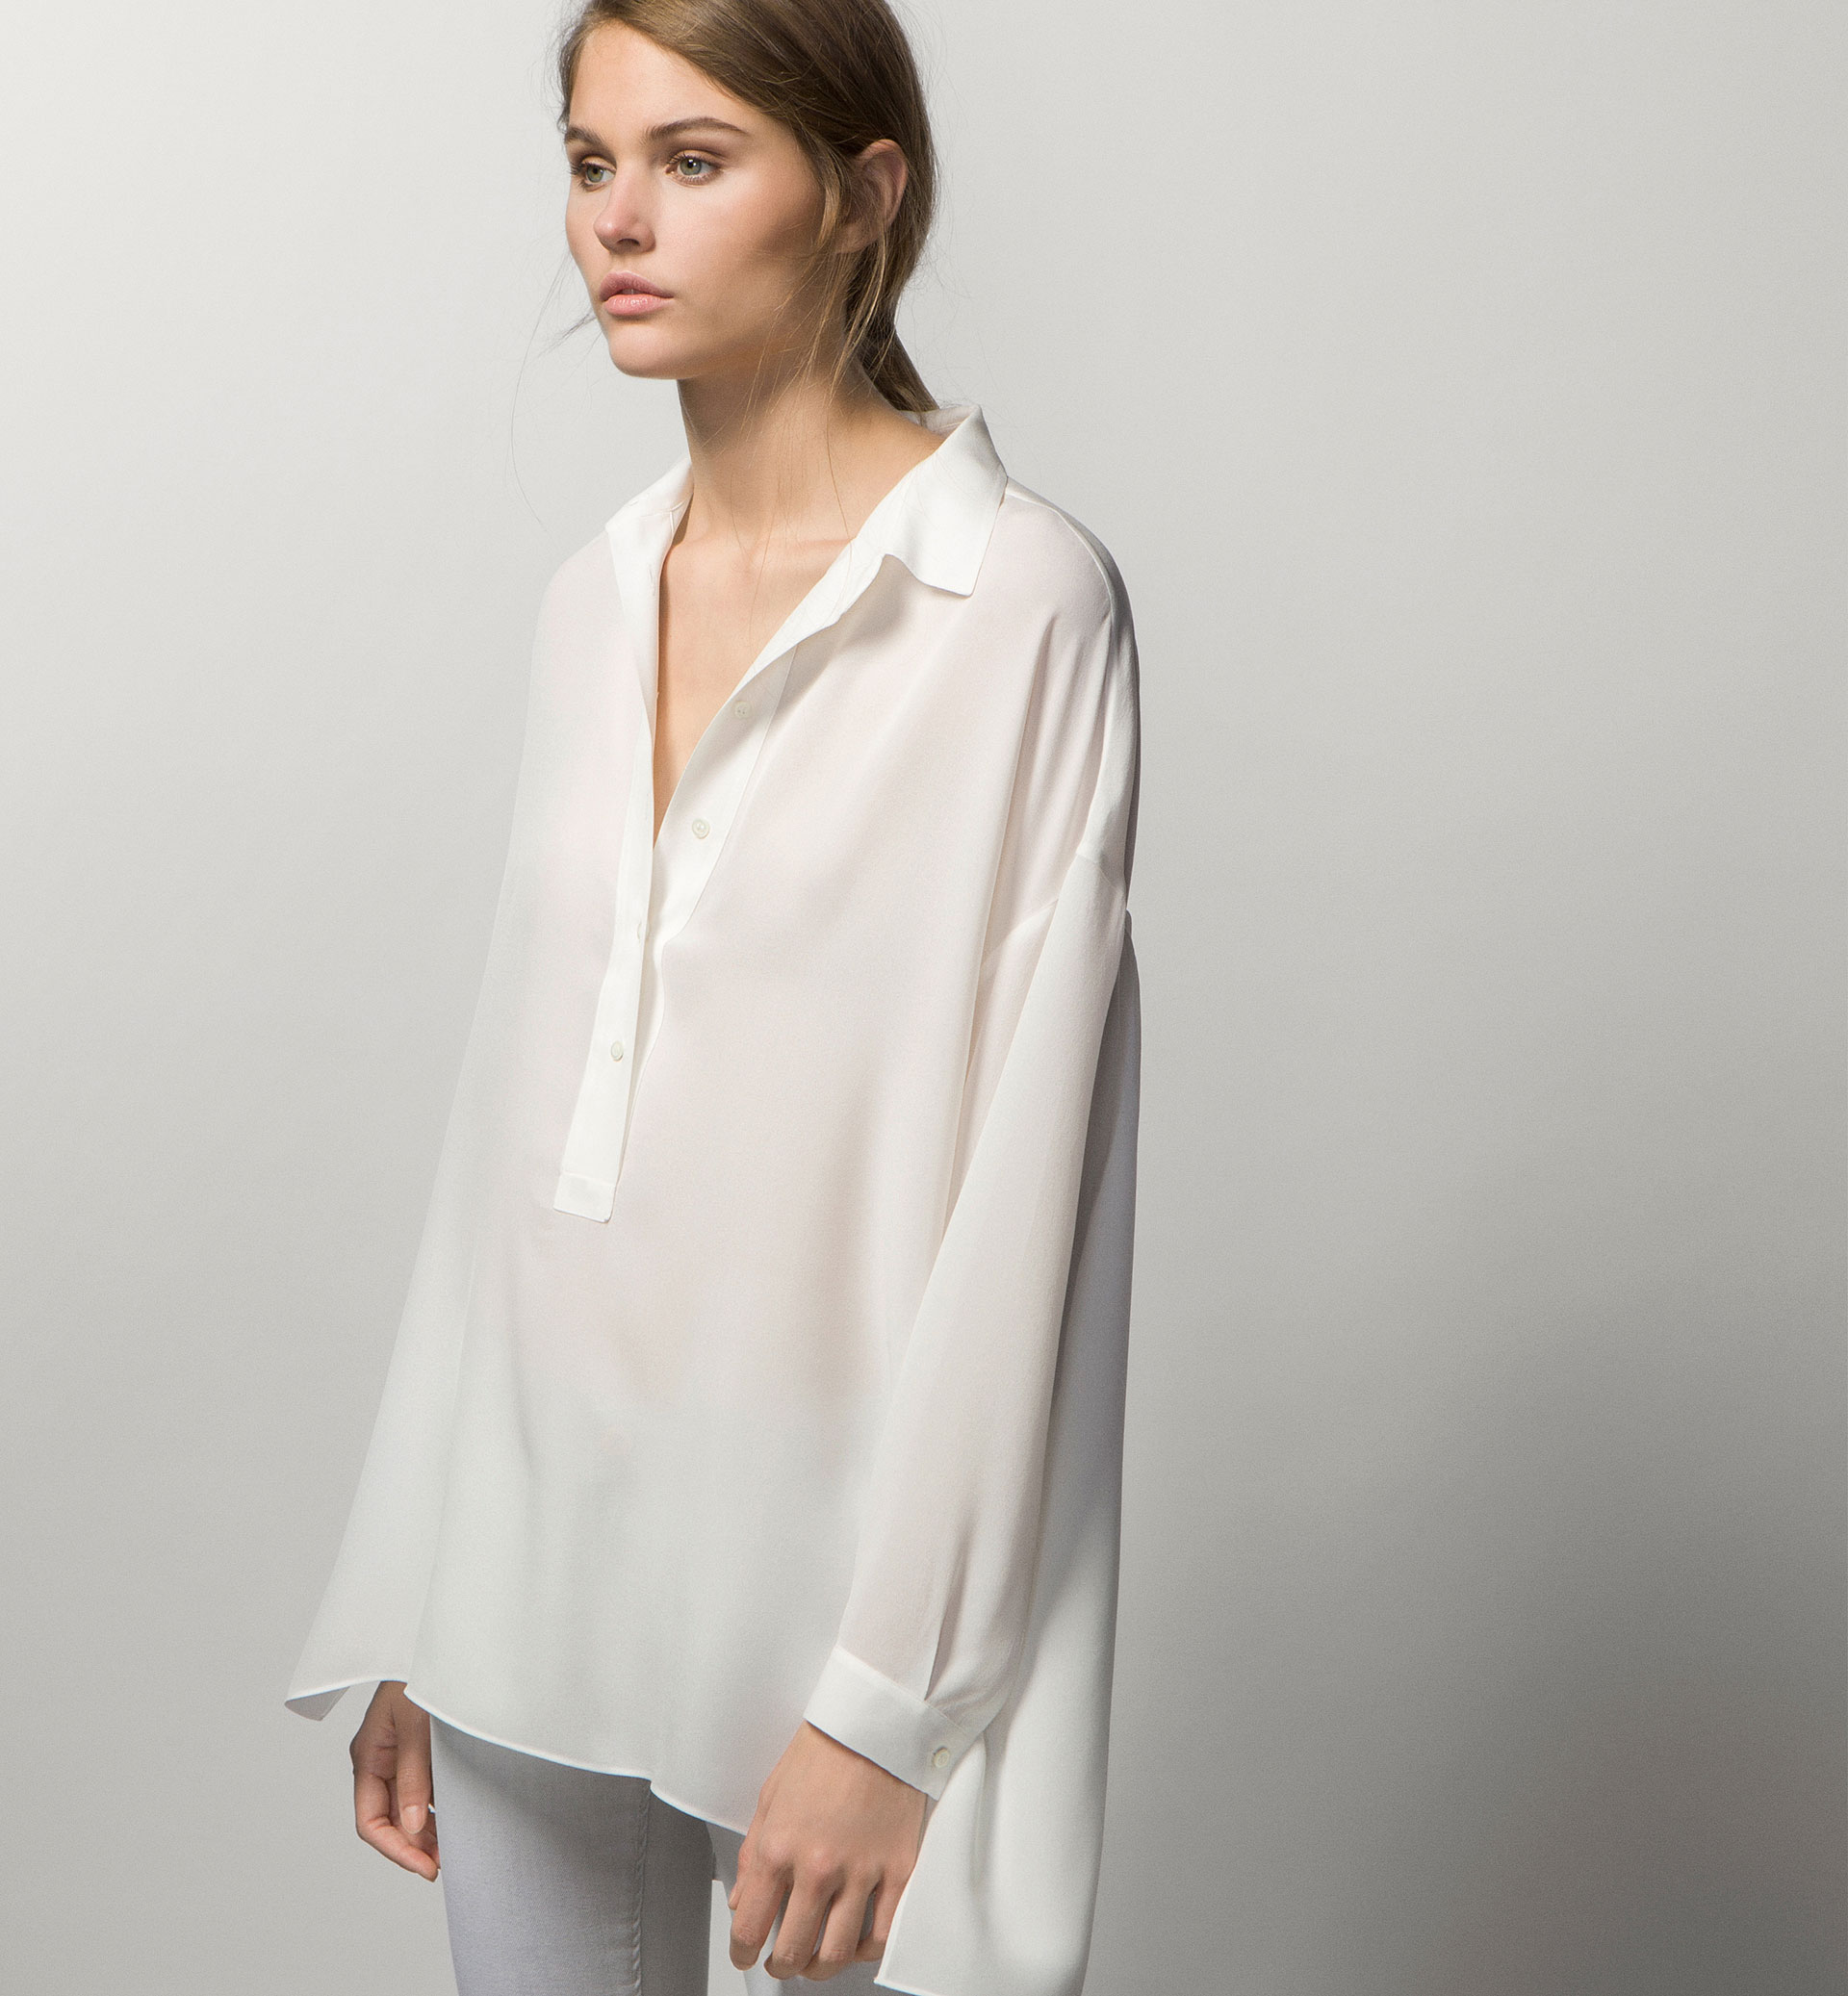 LARGE BLOUSE WITH BACK PLEATS